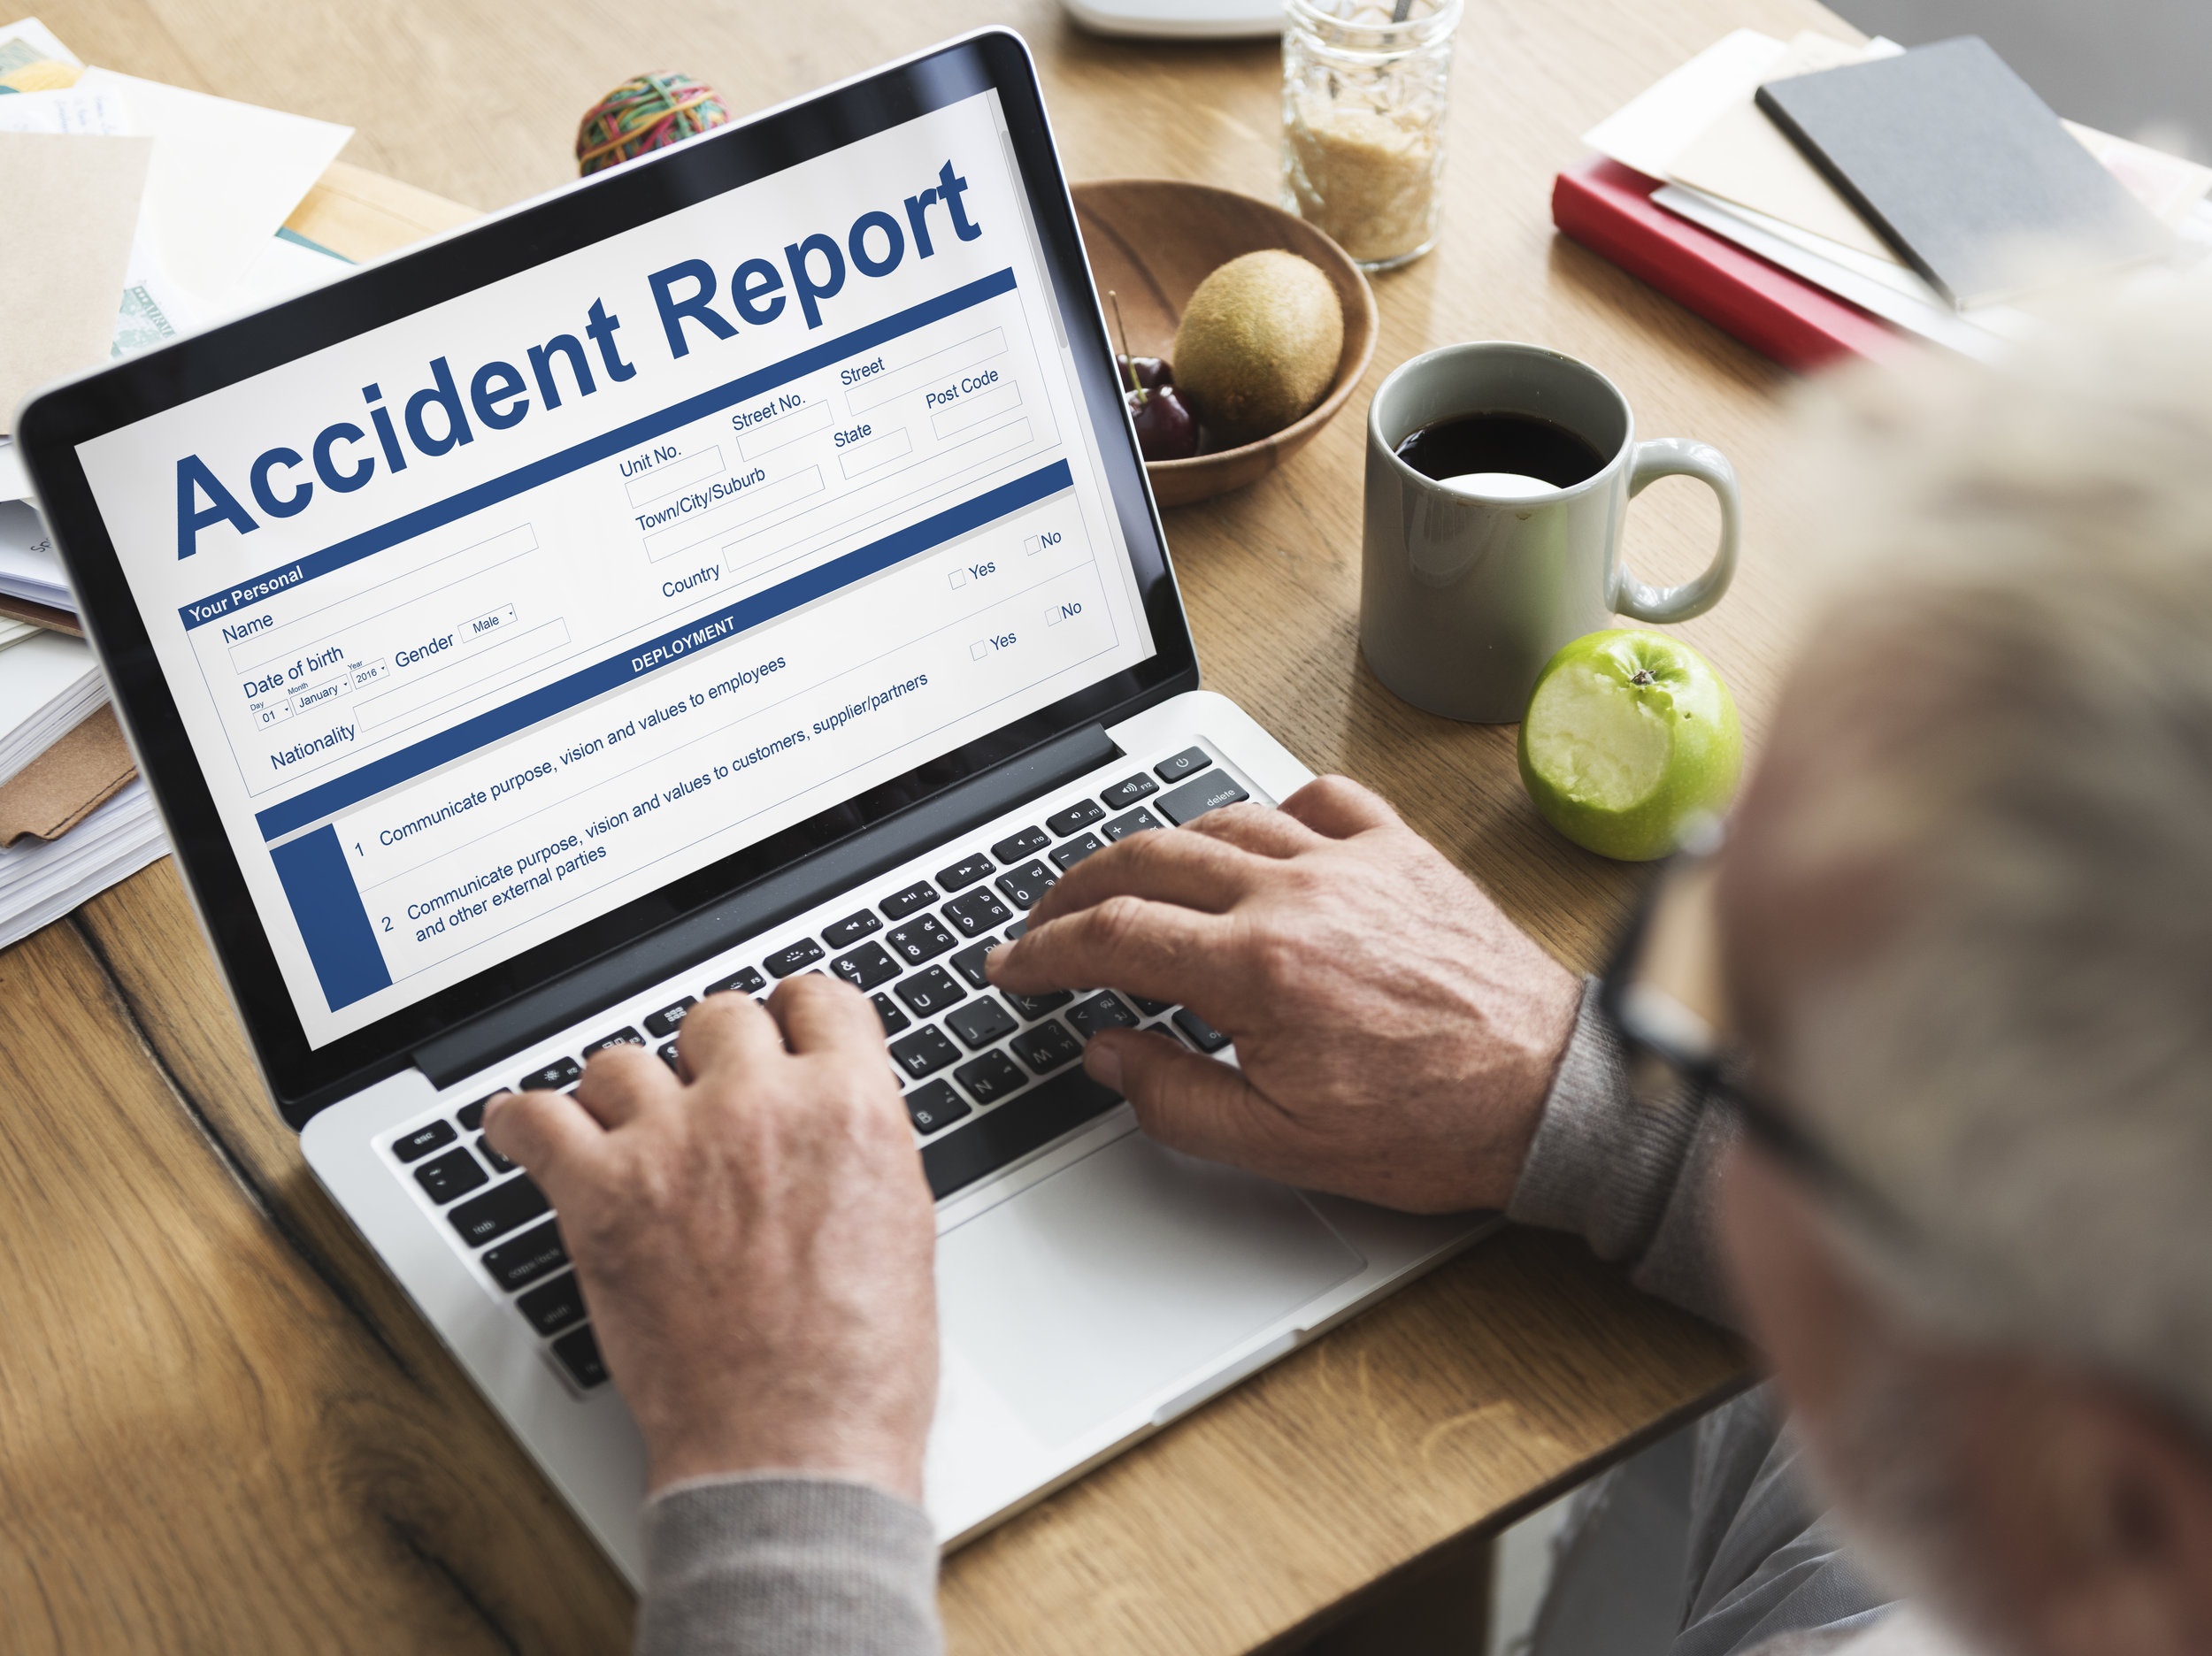 Man sitting at a laptop with an Accident Report on the screen.